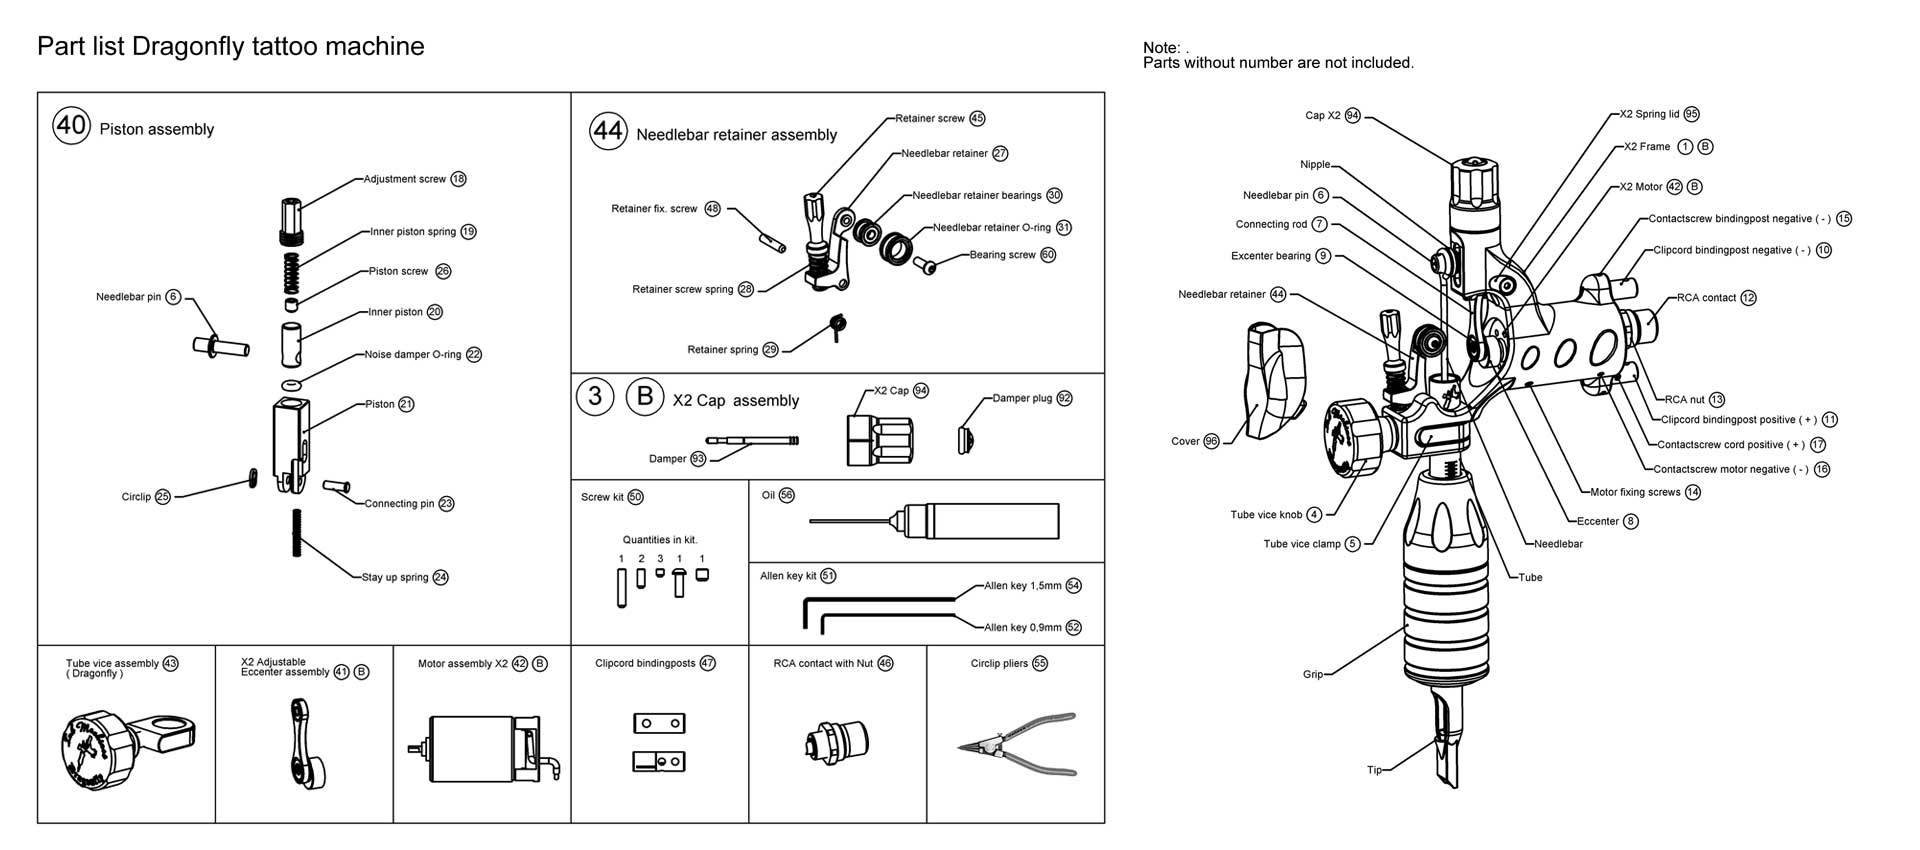 No 44 - Needlebar Retainer Assembly